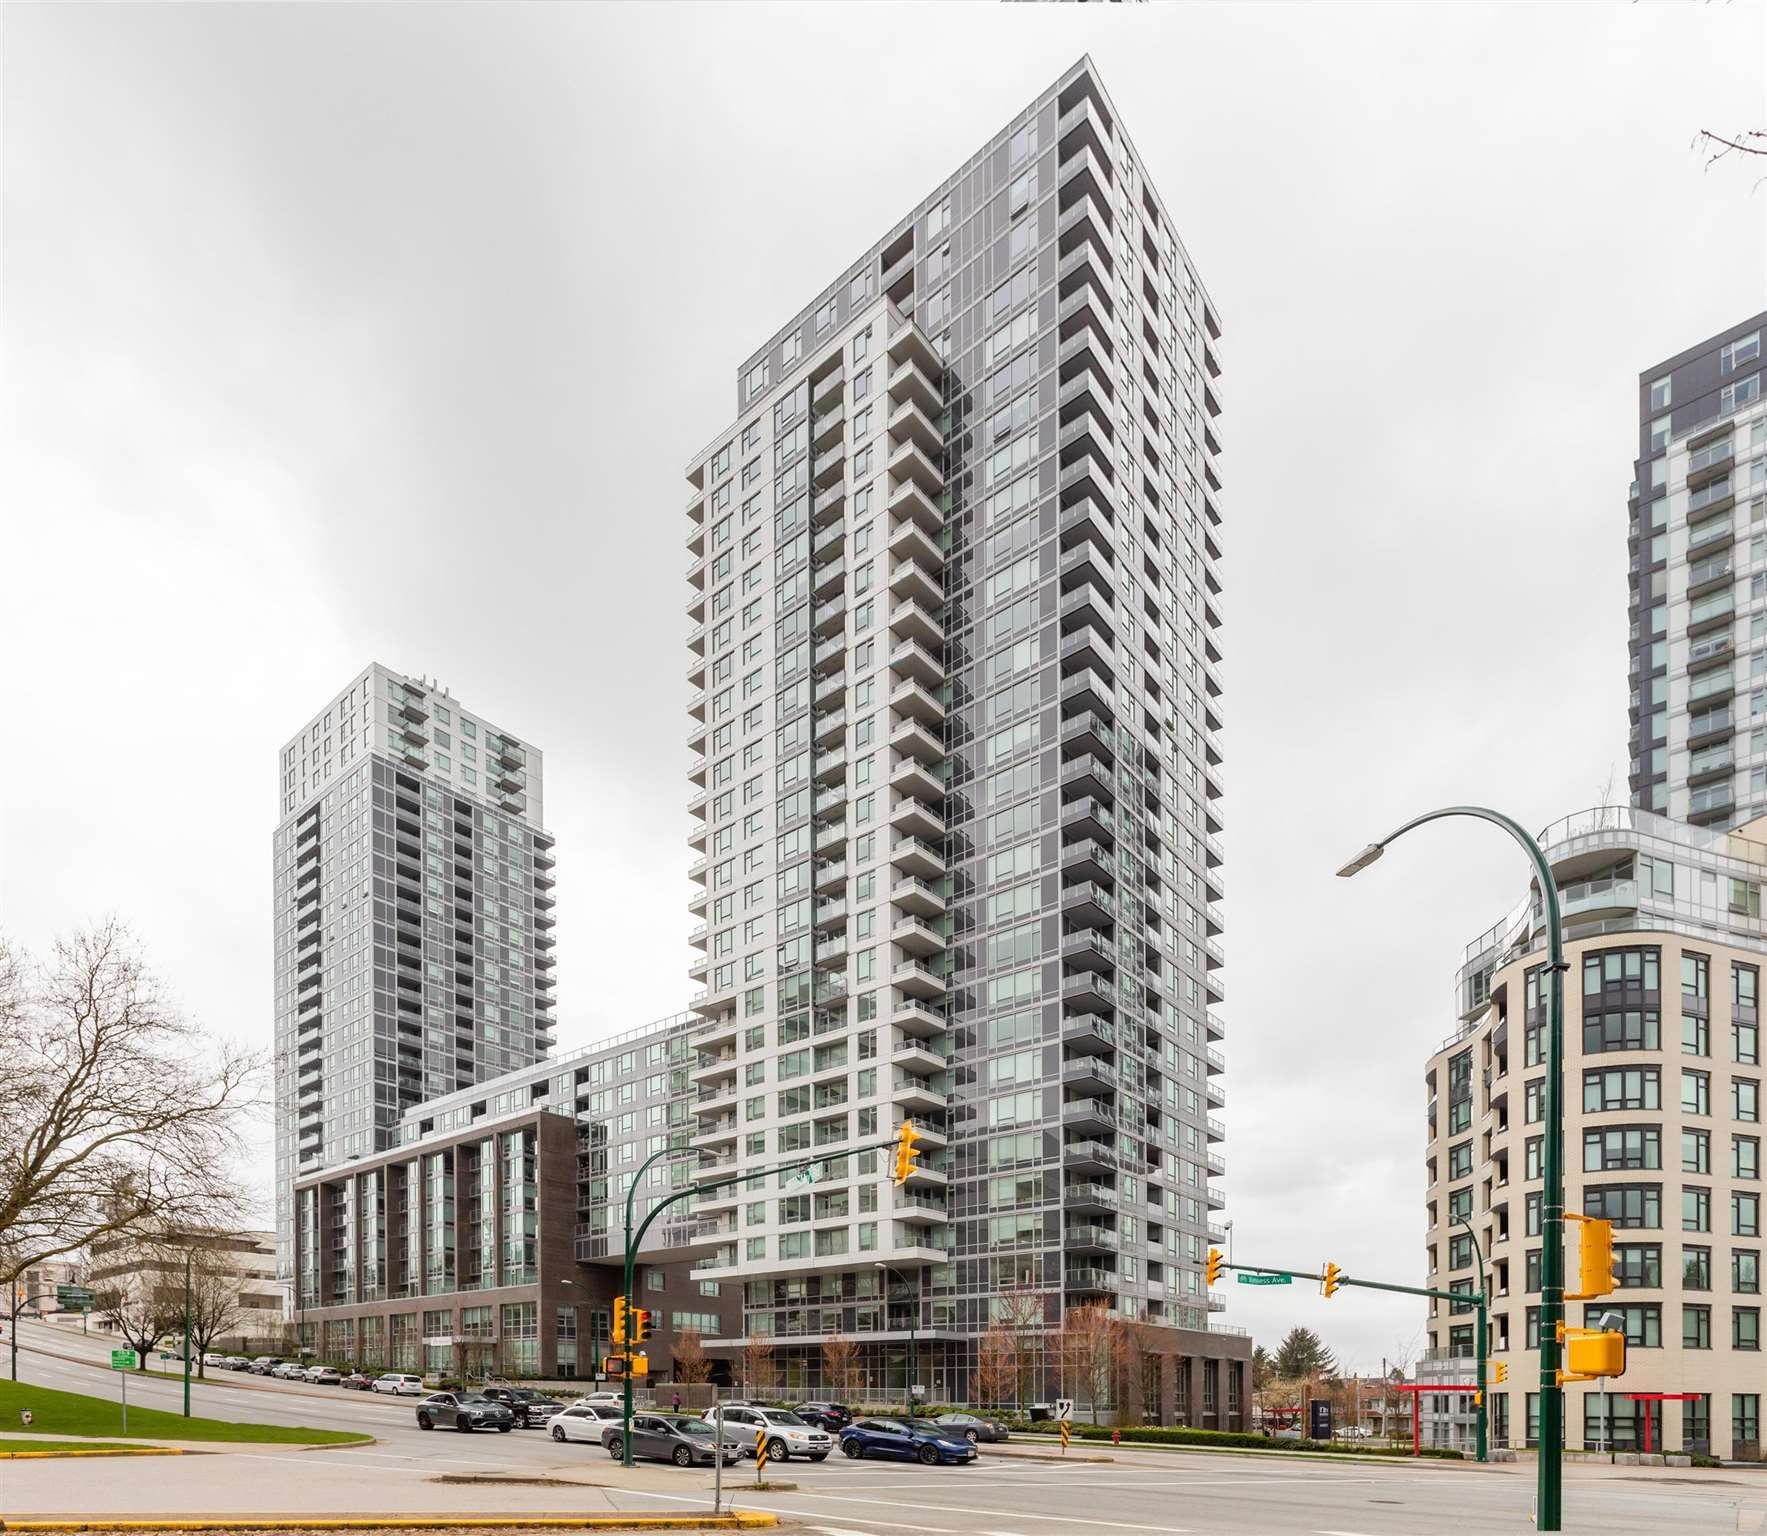 Main Photo: 2003-5515 Boundary Road in Vancouver: Collingwood VE Condo for sale (Vancouver East)  : MLS®# R2608292